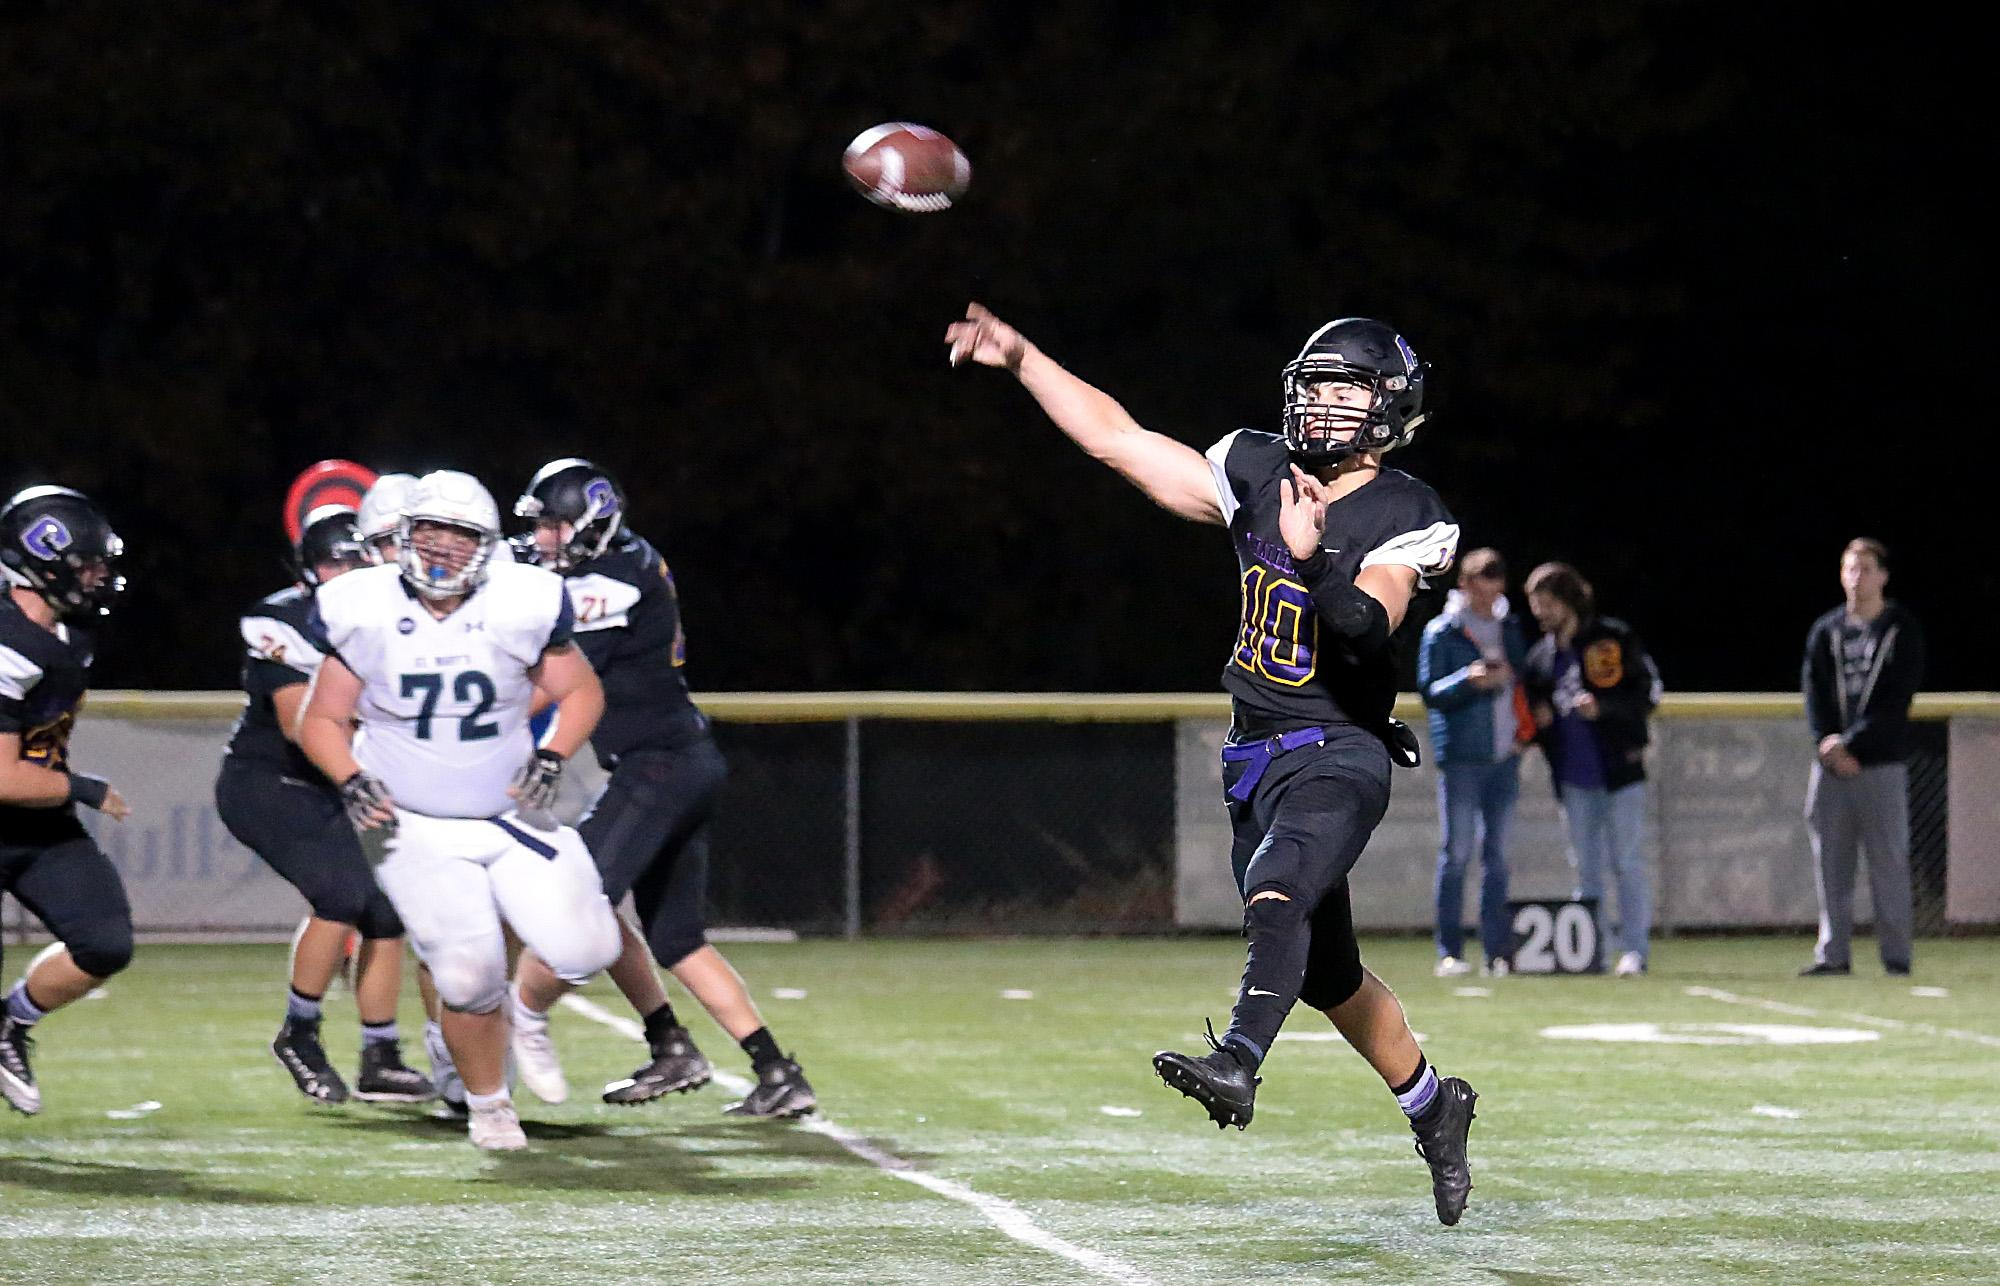 Cascade Christian junior Quarterback Kiegan Schaan passing the ball against St. Mary's at US Cellular Community Fields on Friday.  (PHOTO BY:  LARRY STAUTH JR)